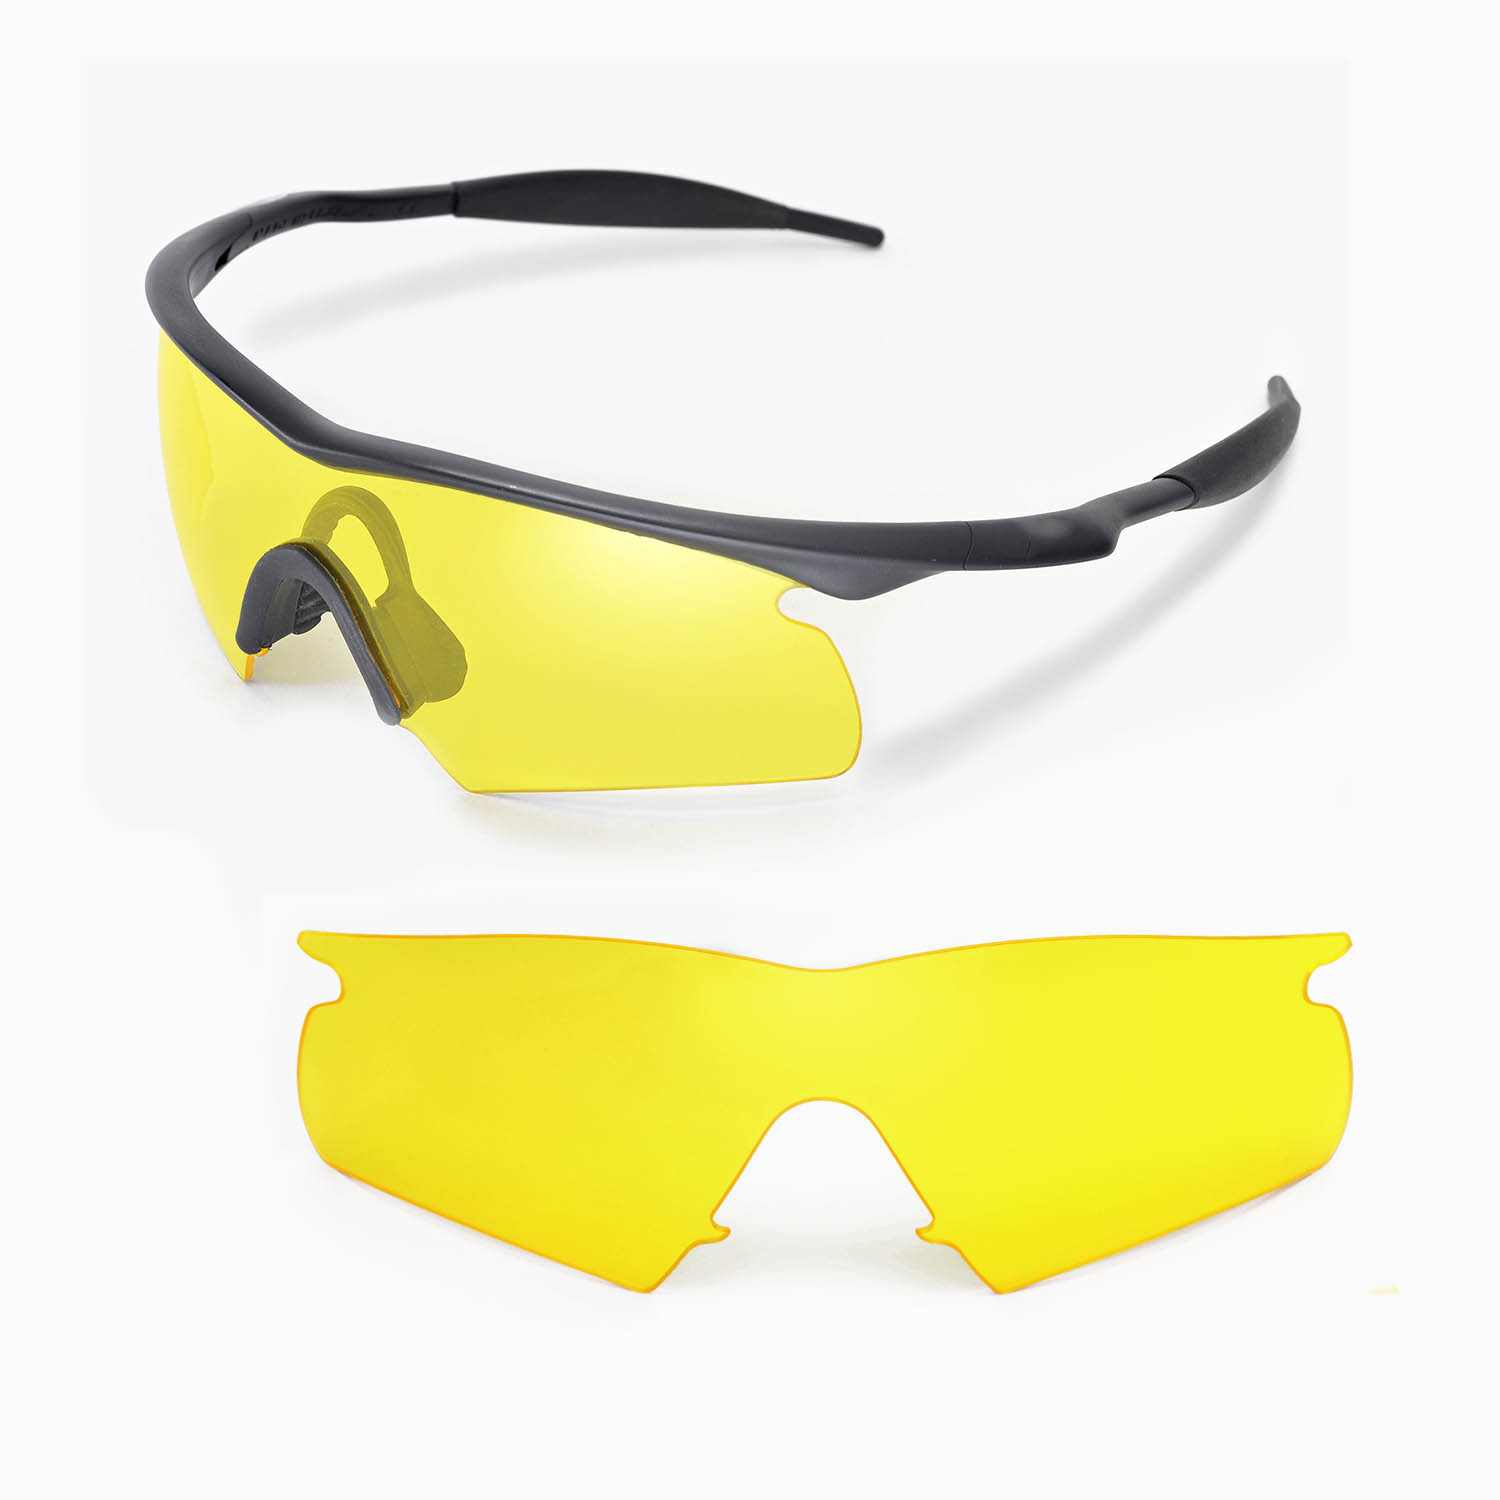 5acfa53fdfd Details about New Walleva Yellow Replacement Lenses For Oakley New M Frame  Hybrid Sunglasses